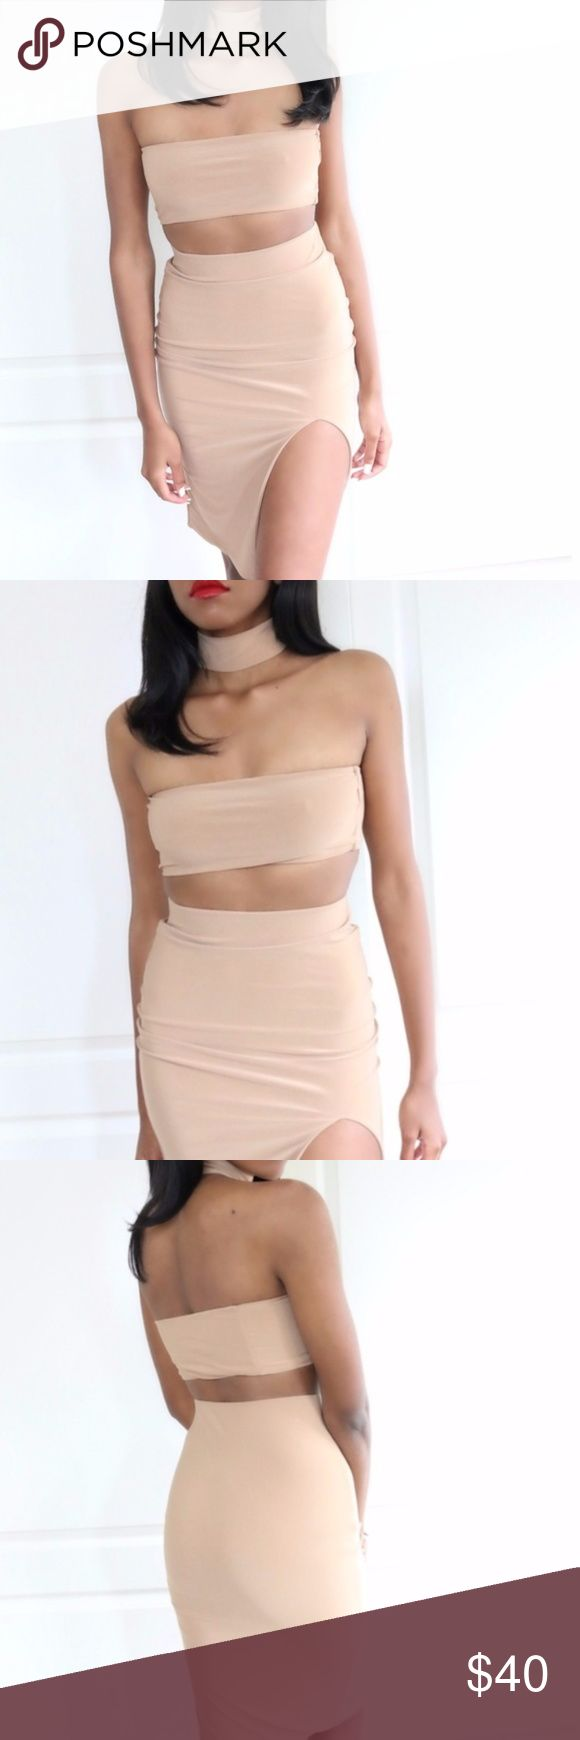 "Bianca Choker Neck 'Three Piece' Set **Small snag on front side of bandeau top.    Super sexy three-piece set! Doubled-Lined. Form fitting. Includes the choker, bandeau, and skirt.  The choker has a two-button closure located in the back. Color: Camel. NOT see through material, and stretches very well!   Material:  96% Poly 4% Span  Measurements:   Top: L (Pit to Pit 14"")   Bottom: Length: 26"" L (Waist 26.5"")  Model Measurements: Height 5'8"", Chest: 32B, Waist 25"", Hips 35"" Jaded Affairs…"